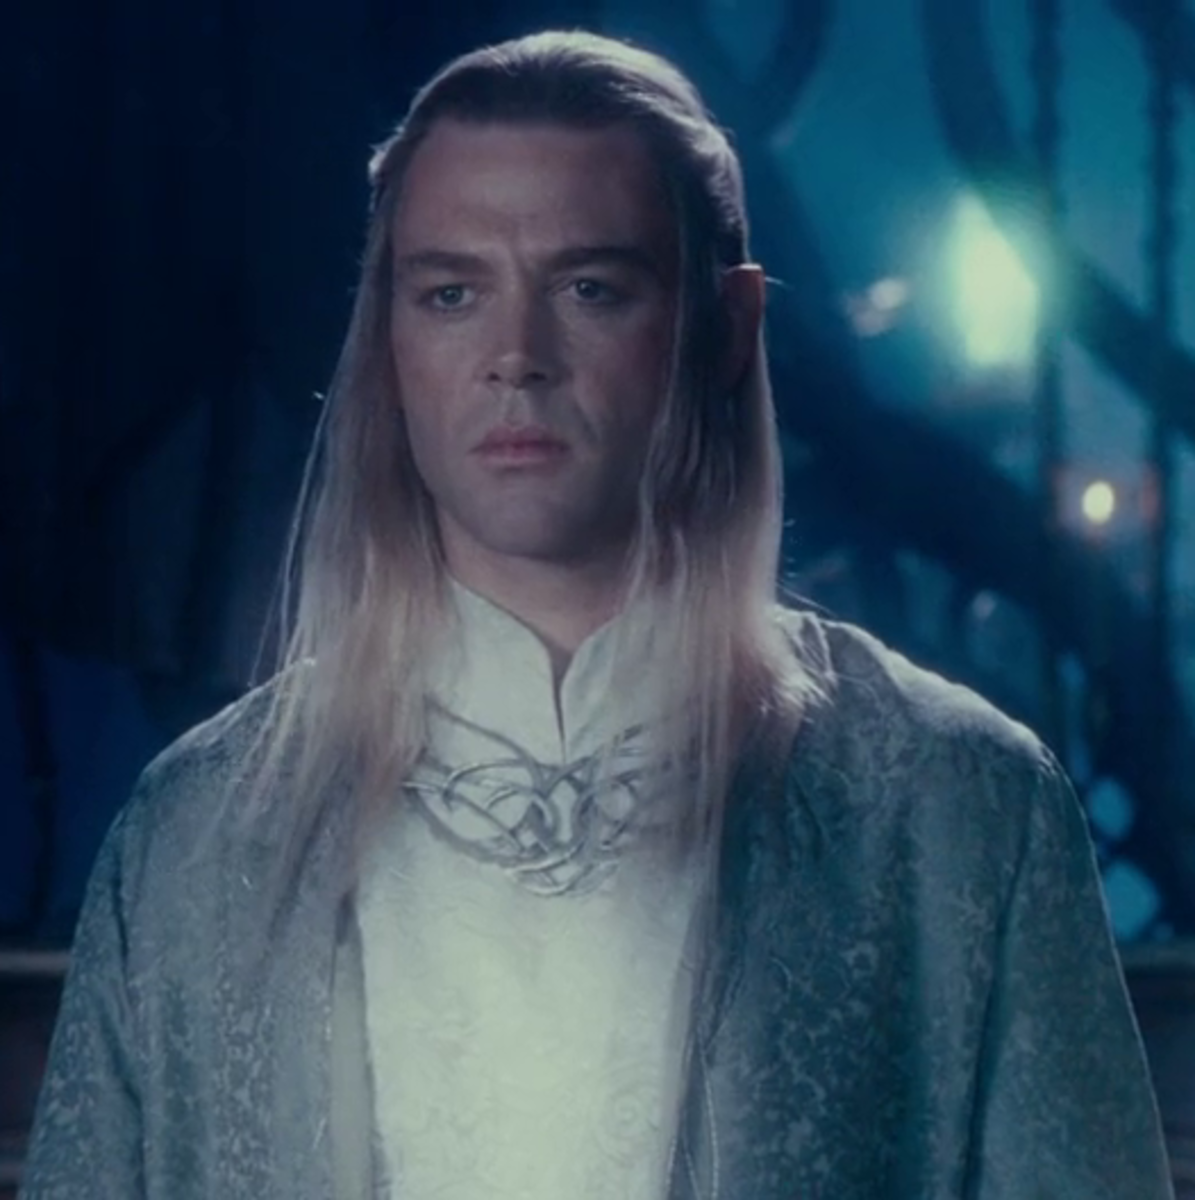 From New Line Cinema.  Along with Thranduil from Mirkwood, Celeborn was not one of the Silvan Elves but was Sindarin in origin, having come from Beleriand after the First Age.